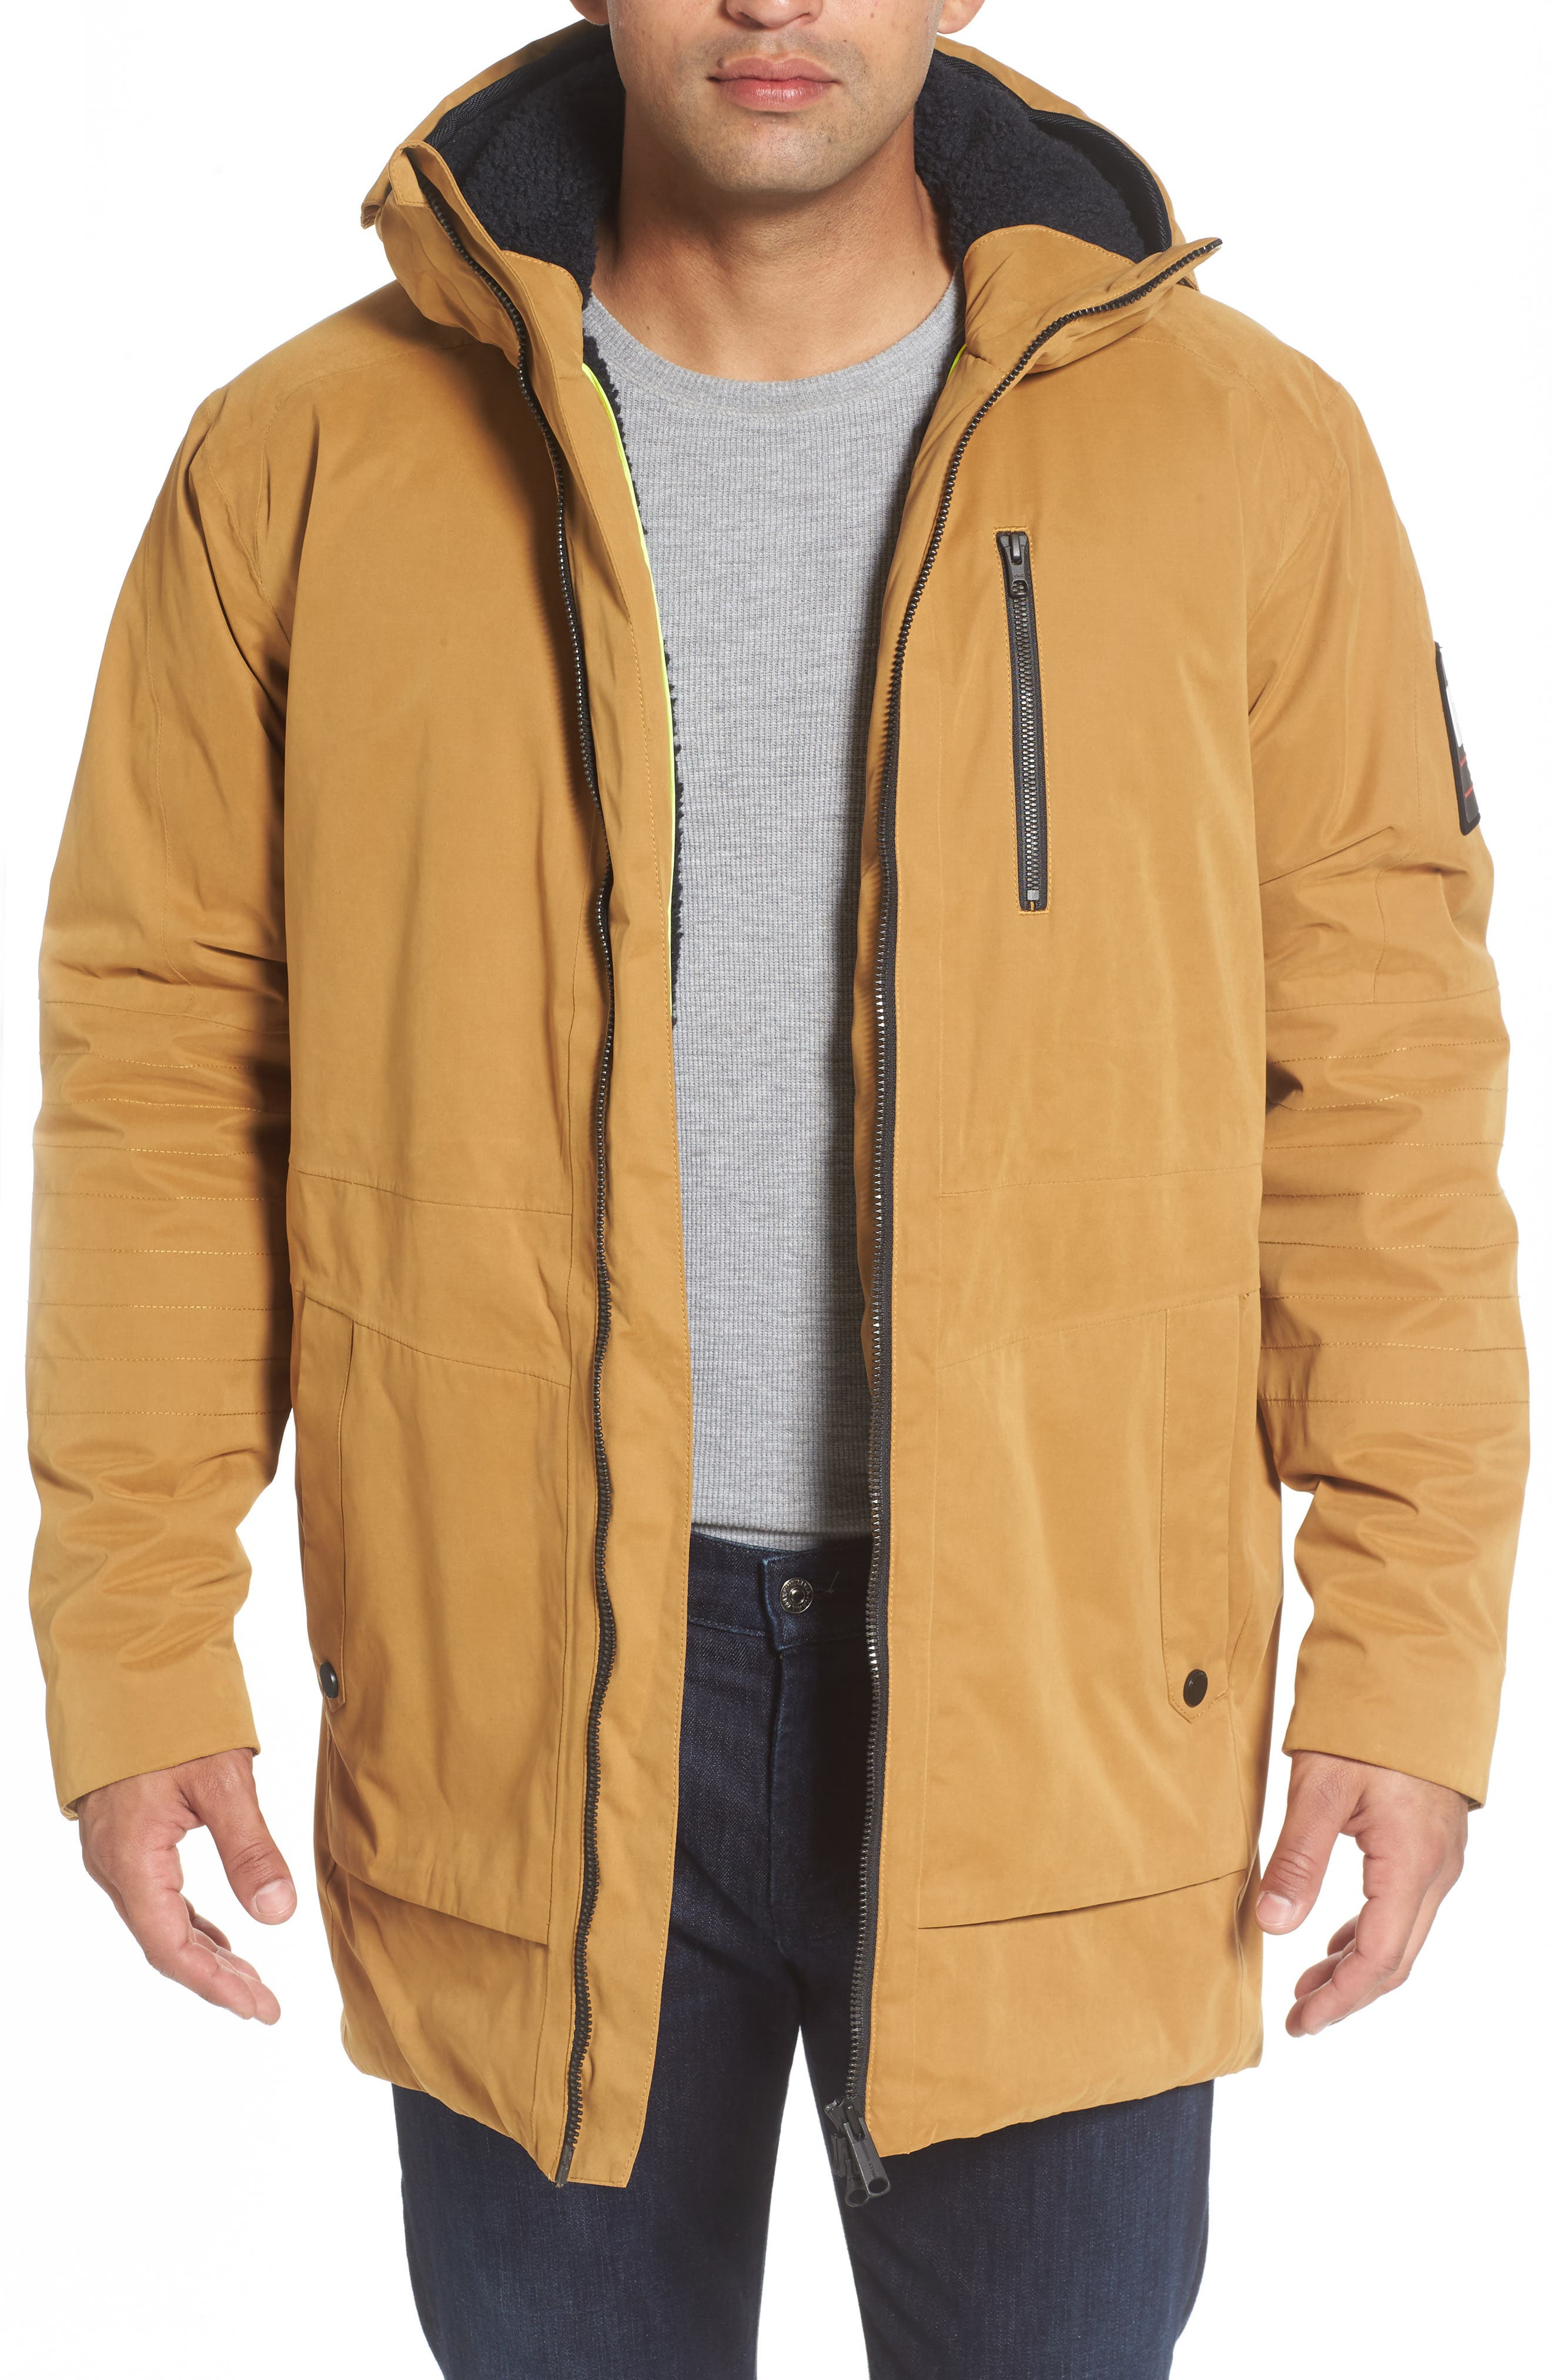 Helly Hansen Njord Waterproof Insulated Parka